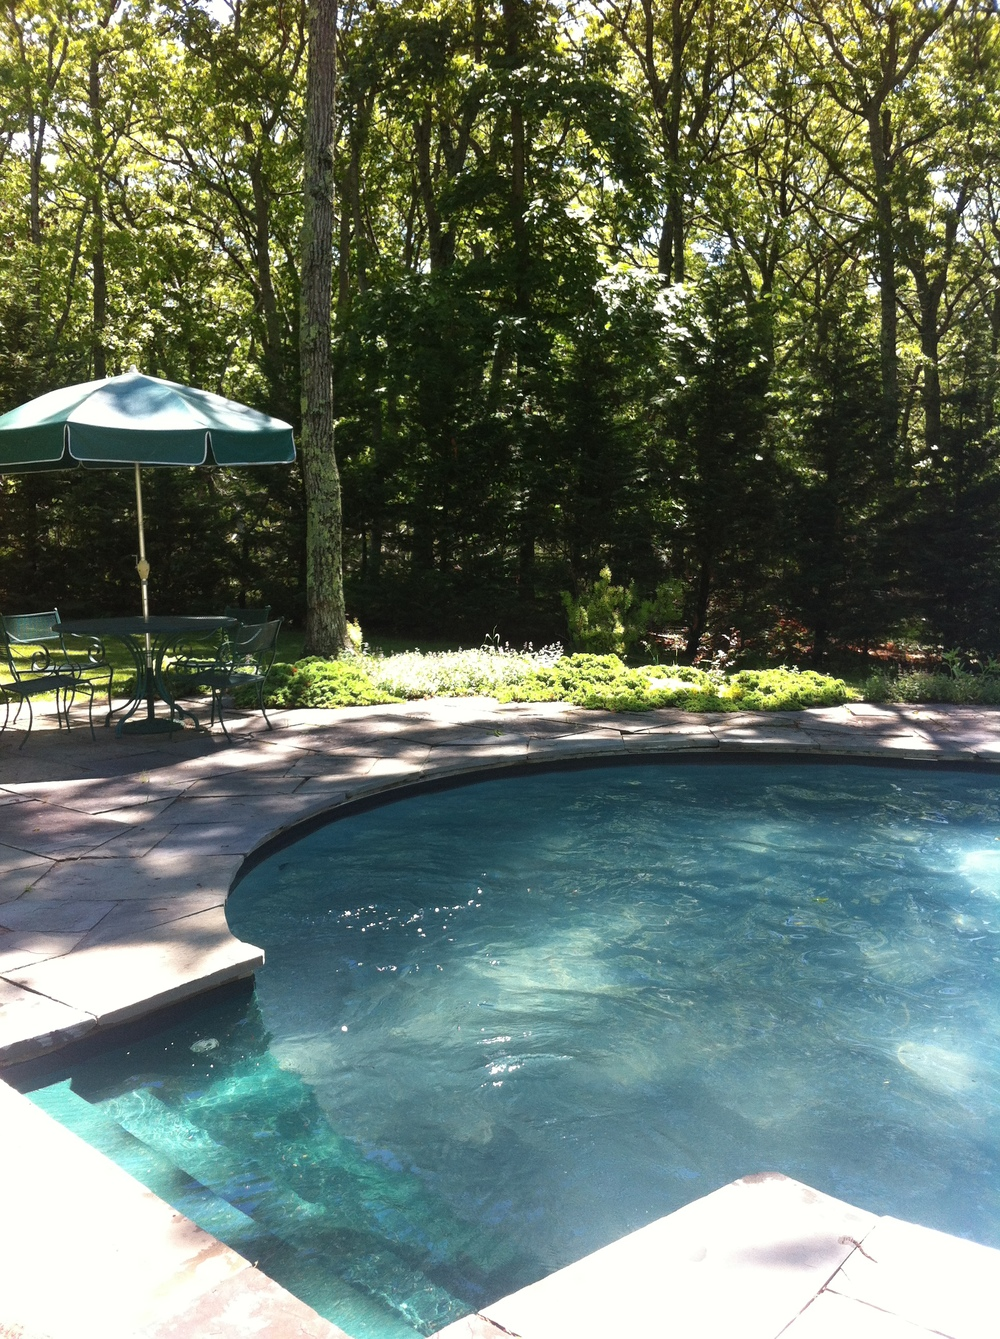 View of the pool from the deck